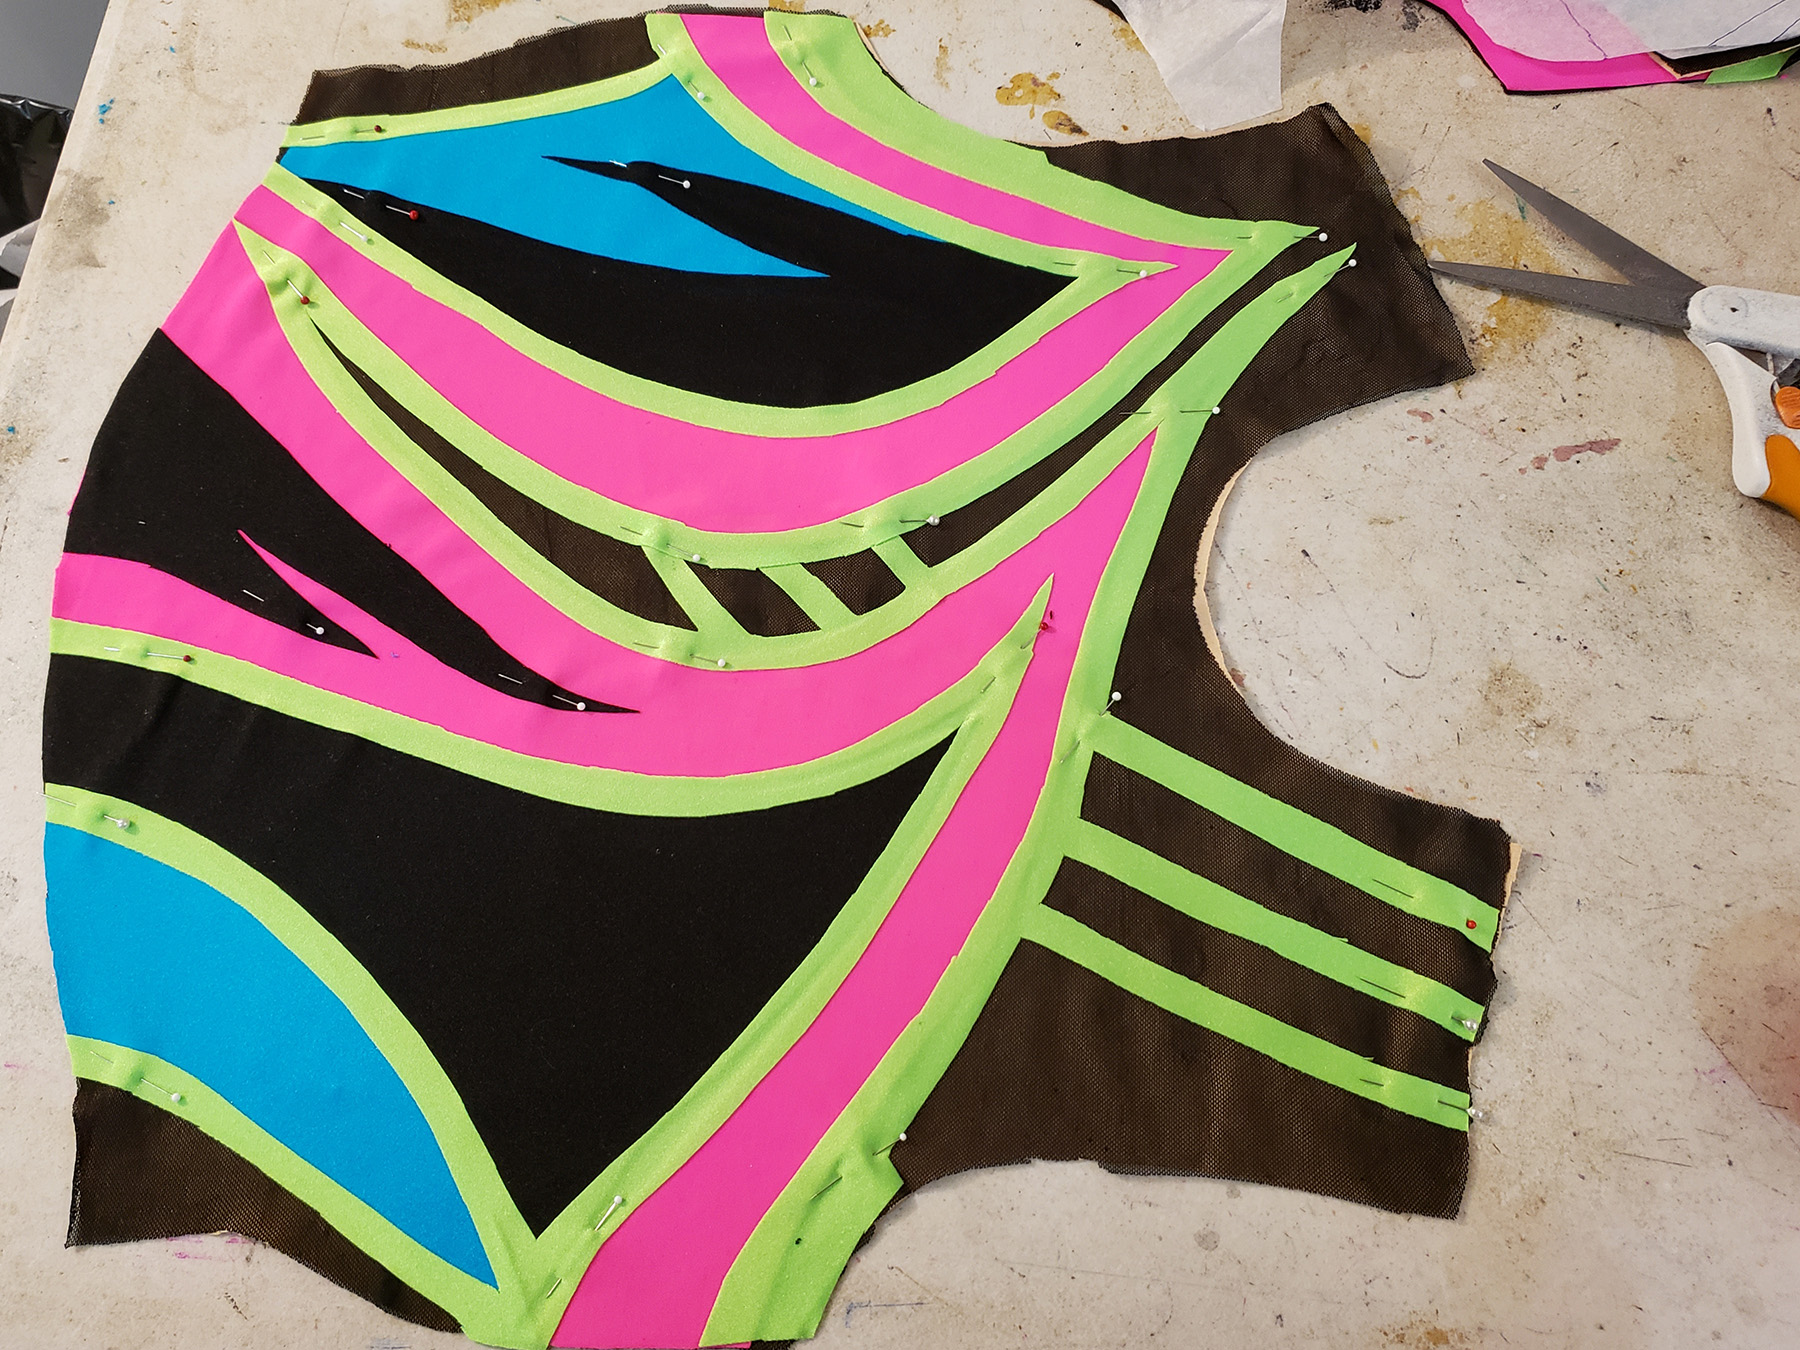 The sewn front bodice of an 80s style figure skating dress. The base is black spandex and mesh, with designs in hot pink, lime green, and sky blue on top.